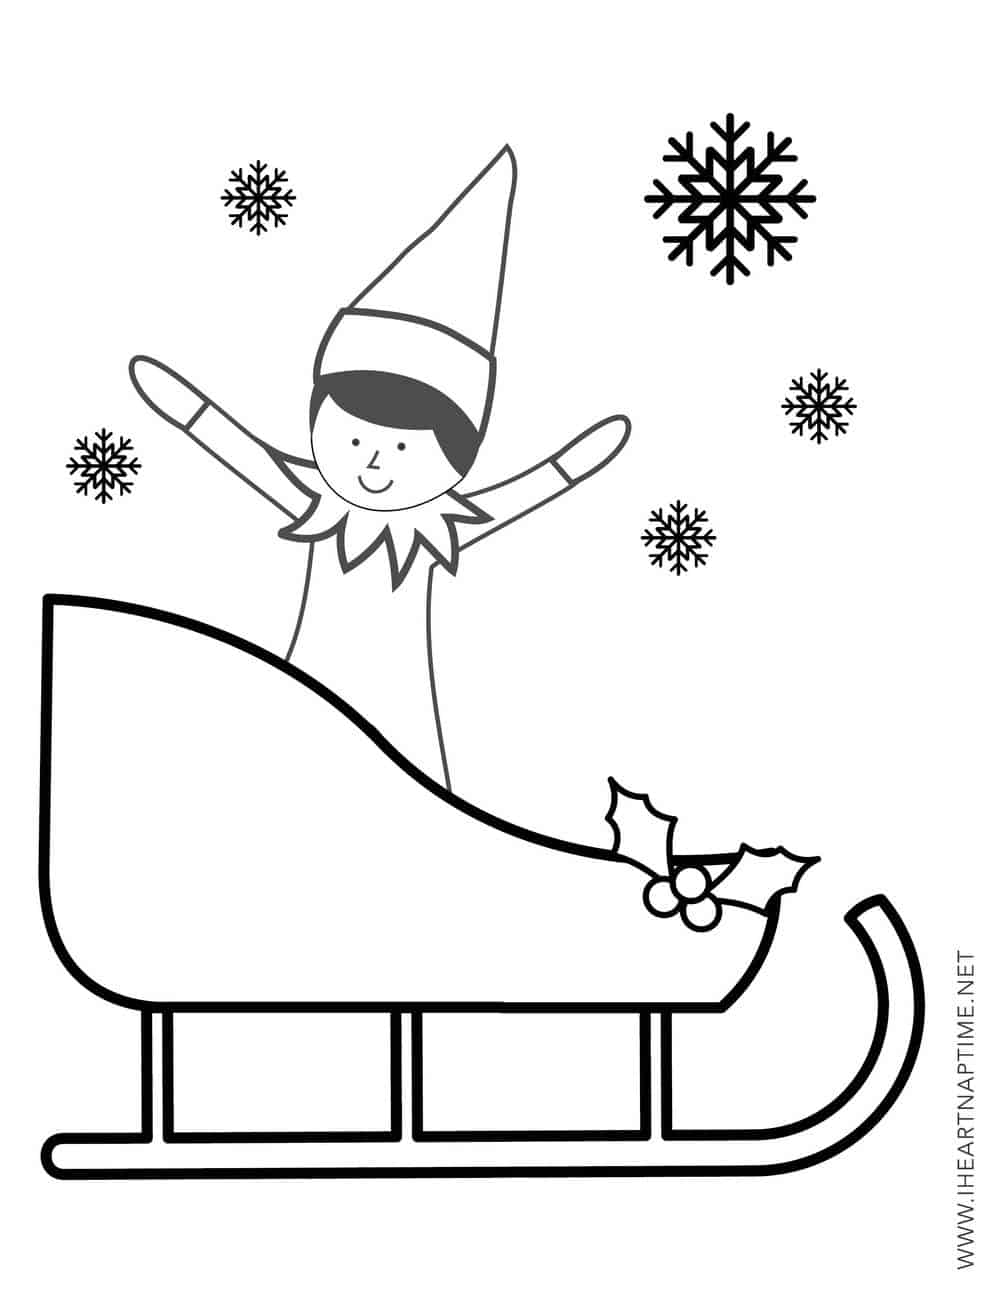 elf on the shelf coloring book elf on the shelf coloring sheets activity shelter the on book elf coloring shelf